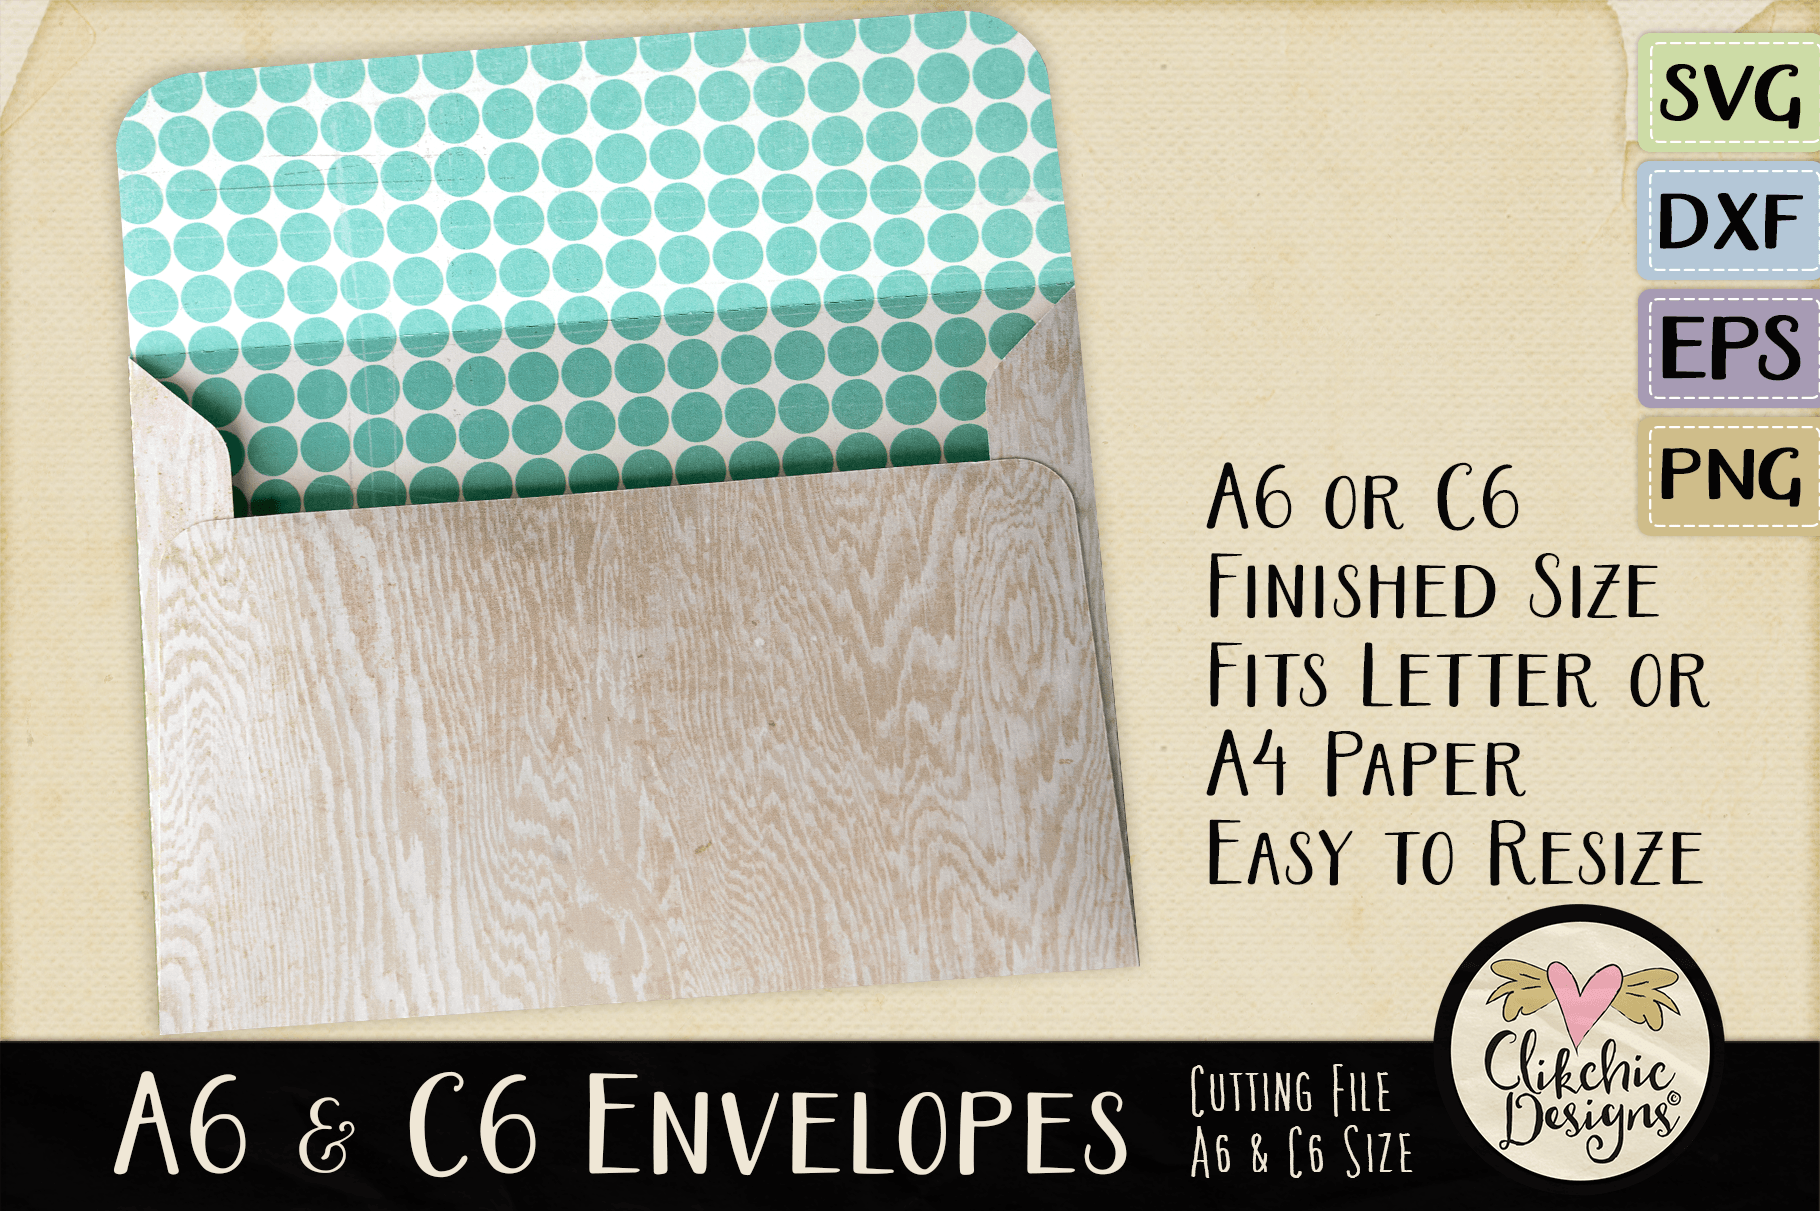 A6 & C6 Envelope SVG - Envelope Cutting File Template example image 2